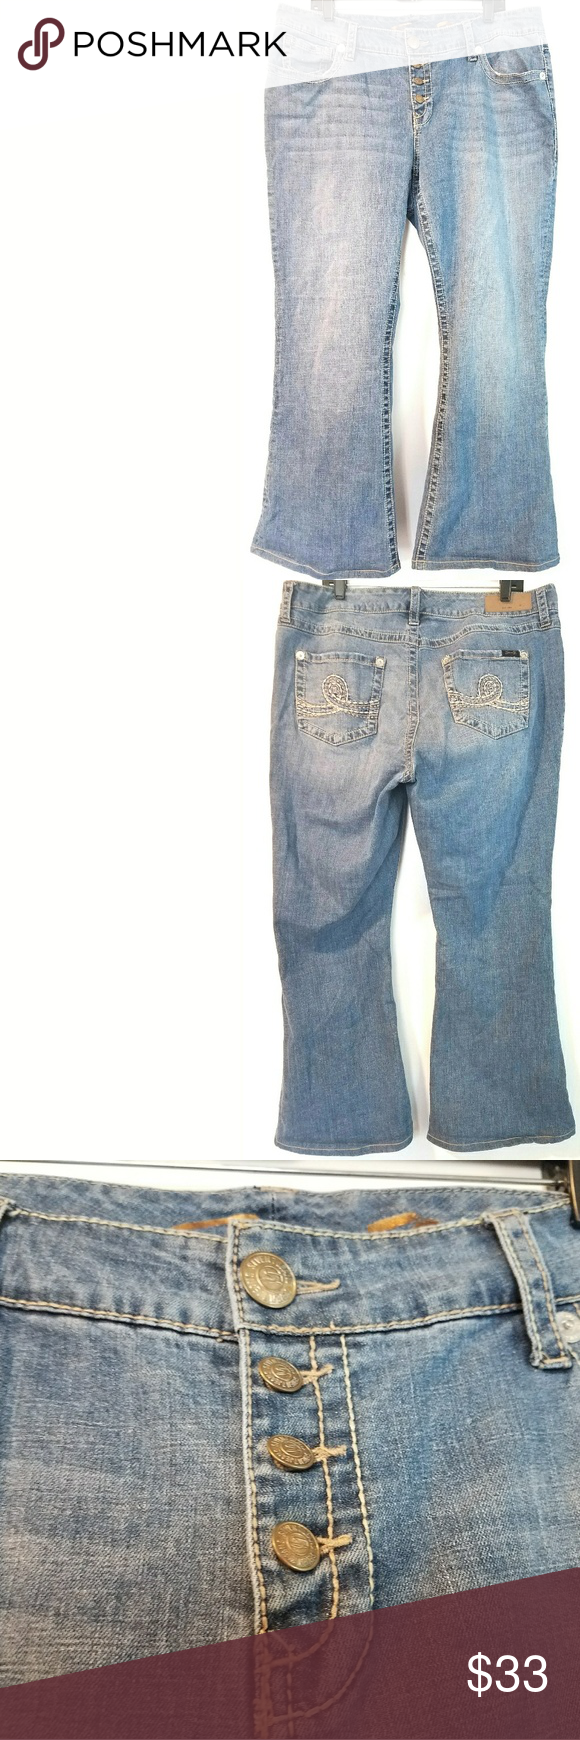 """Seven7 Luxe 18 Flare Jeans - Button Fly These Seven7 Luxe size 18 Flare Jeans - Button Fly - are in good used condition. Nicely broken in, with lots of life left! Waist measures 20"""" across laying flat, so 40"""" around. 10"""" rise. 30"""" inseam. 98% cotton, 2% spandex. ::: Bundle and save! ::: No trades. Seven7 Jeans Flare & Wide Leg"""